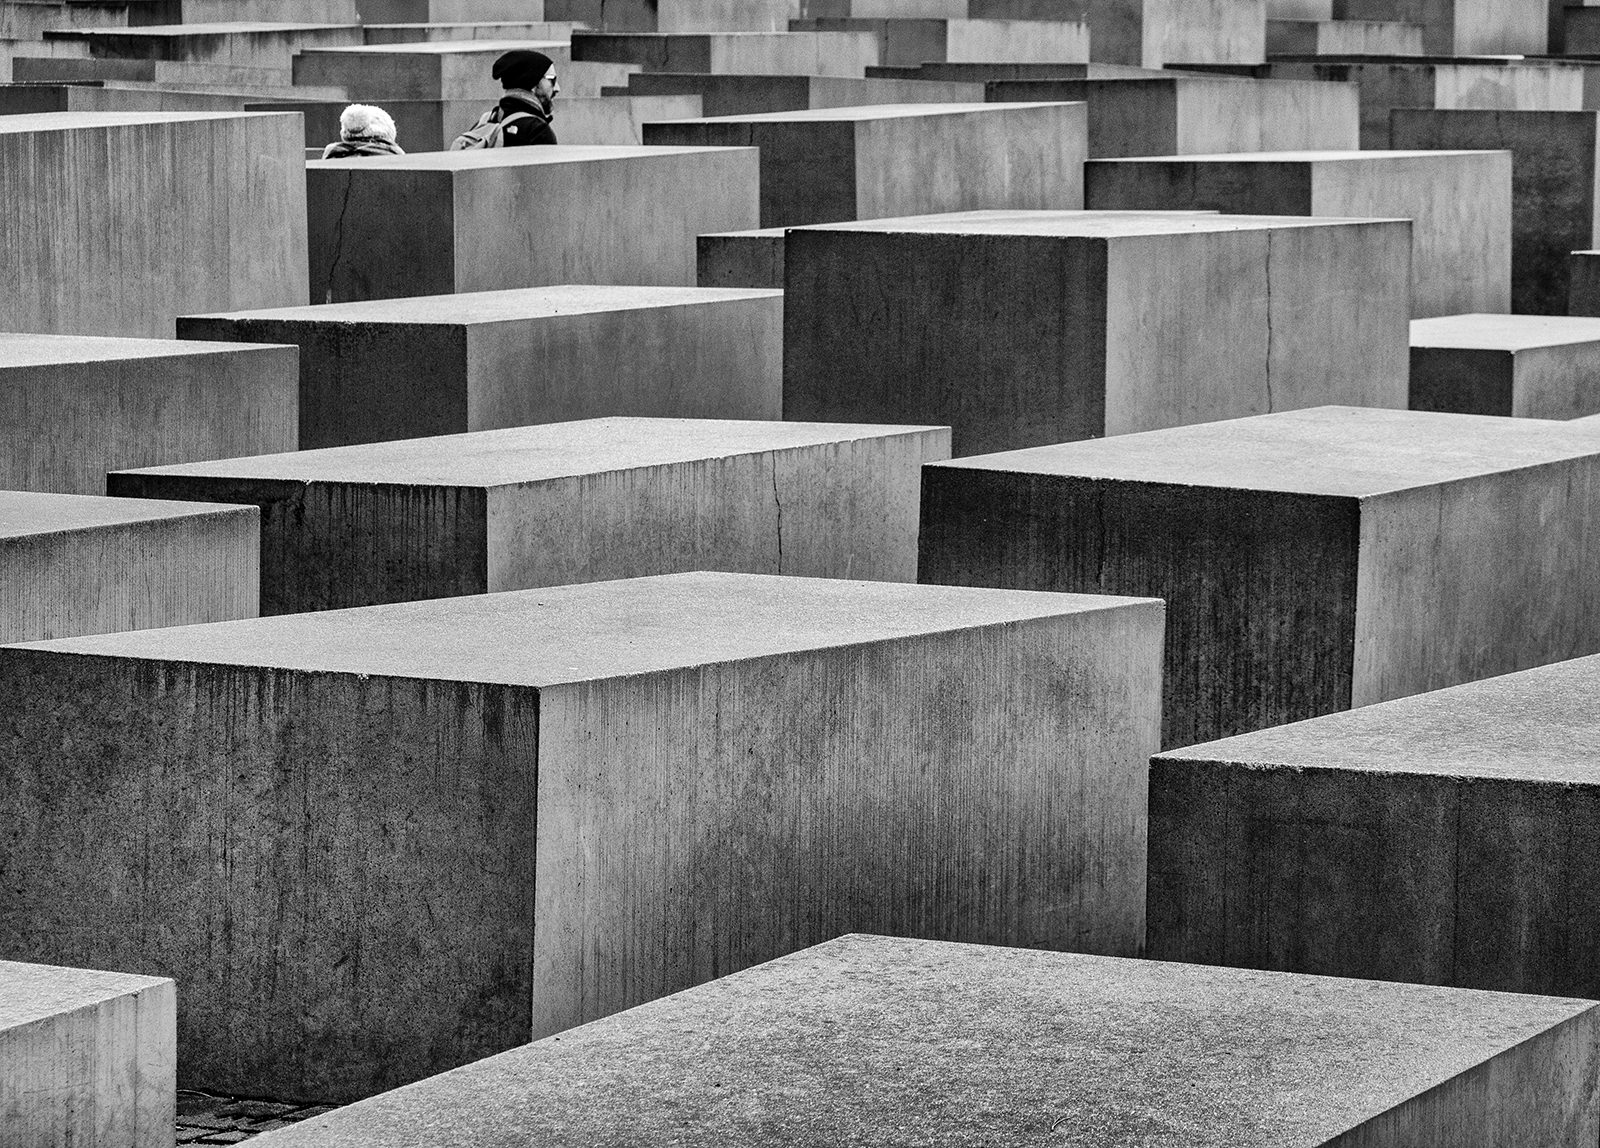 Mike Harris_Lost souls at the Holocaust